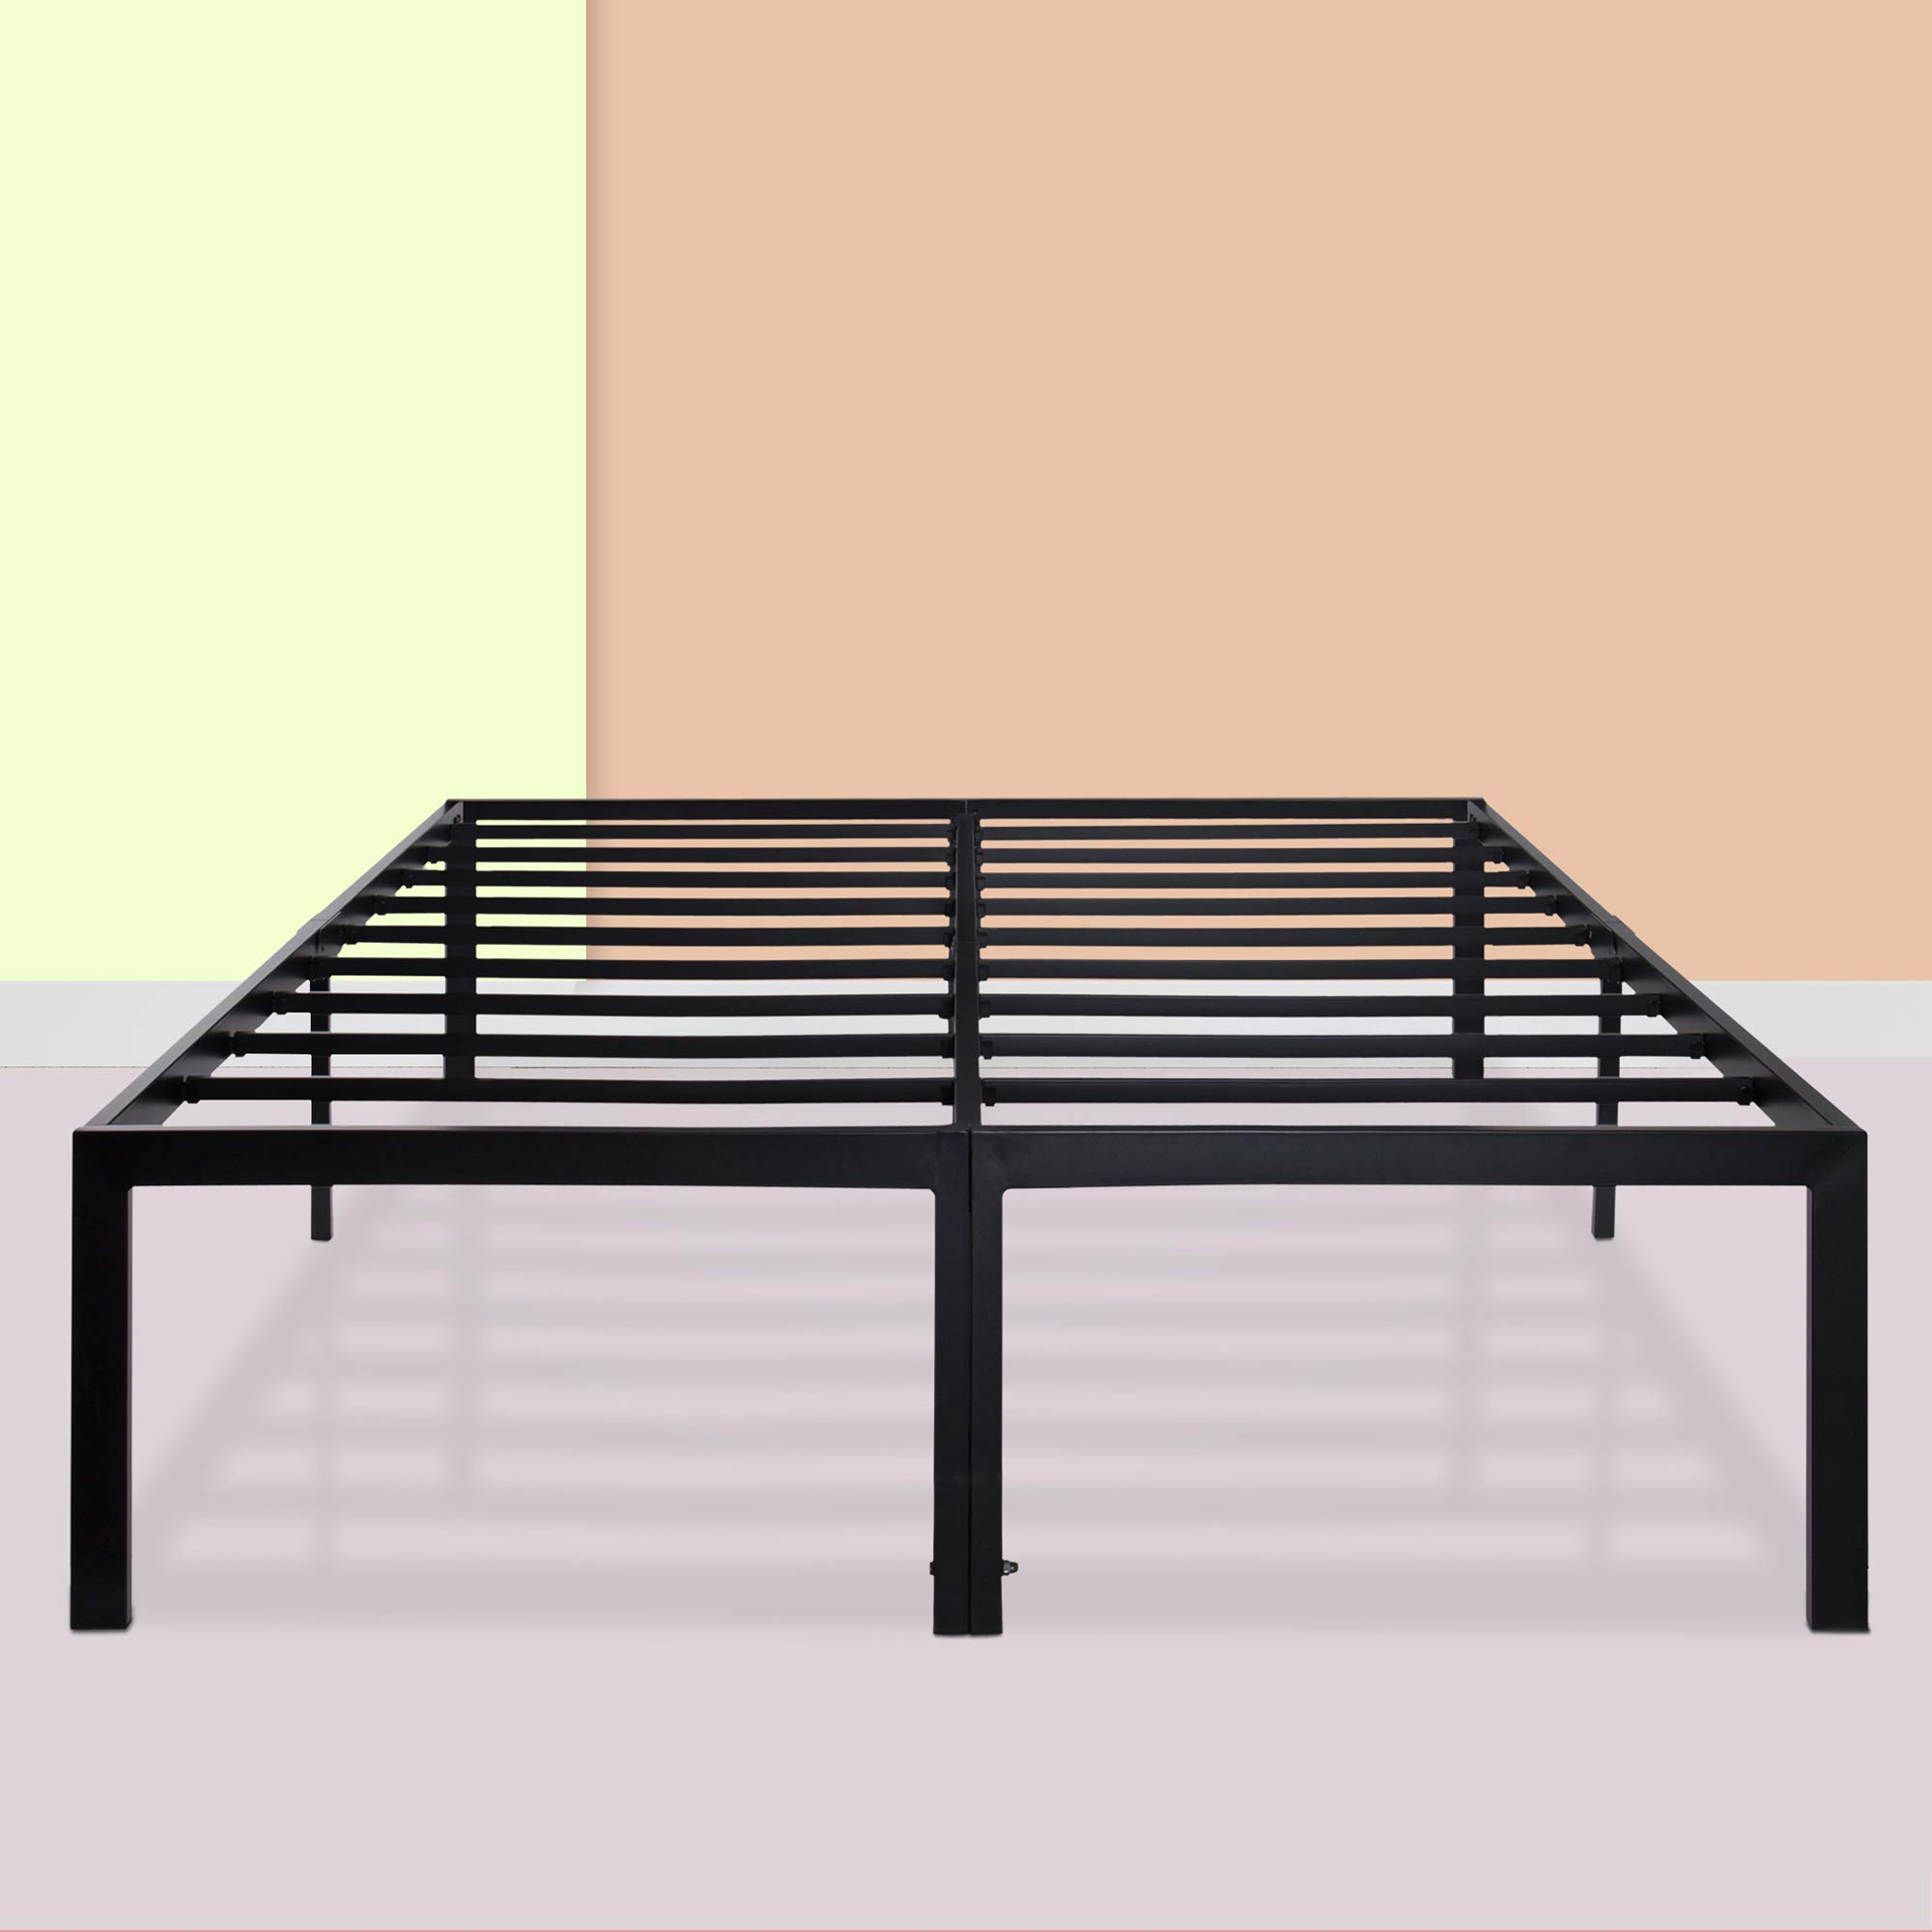 PrimaSleep 18 Inch Ultimate Strength High Profile Heavy Duty Steel Slat/ Anti-slip/ Extra Support/ Easy Assembly/ Mattress Foundation/ Noise Free/ No Box Spring Needed, Black  ,California King by PrimaSleep